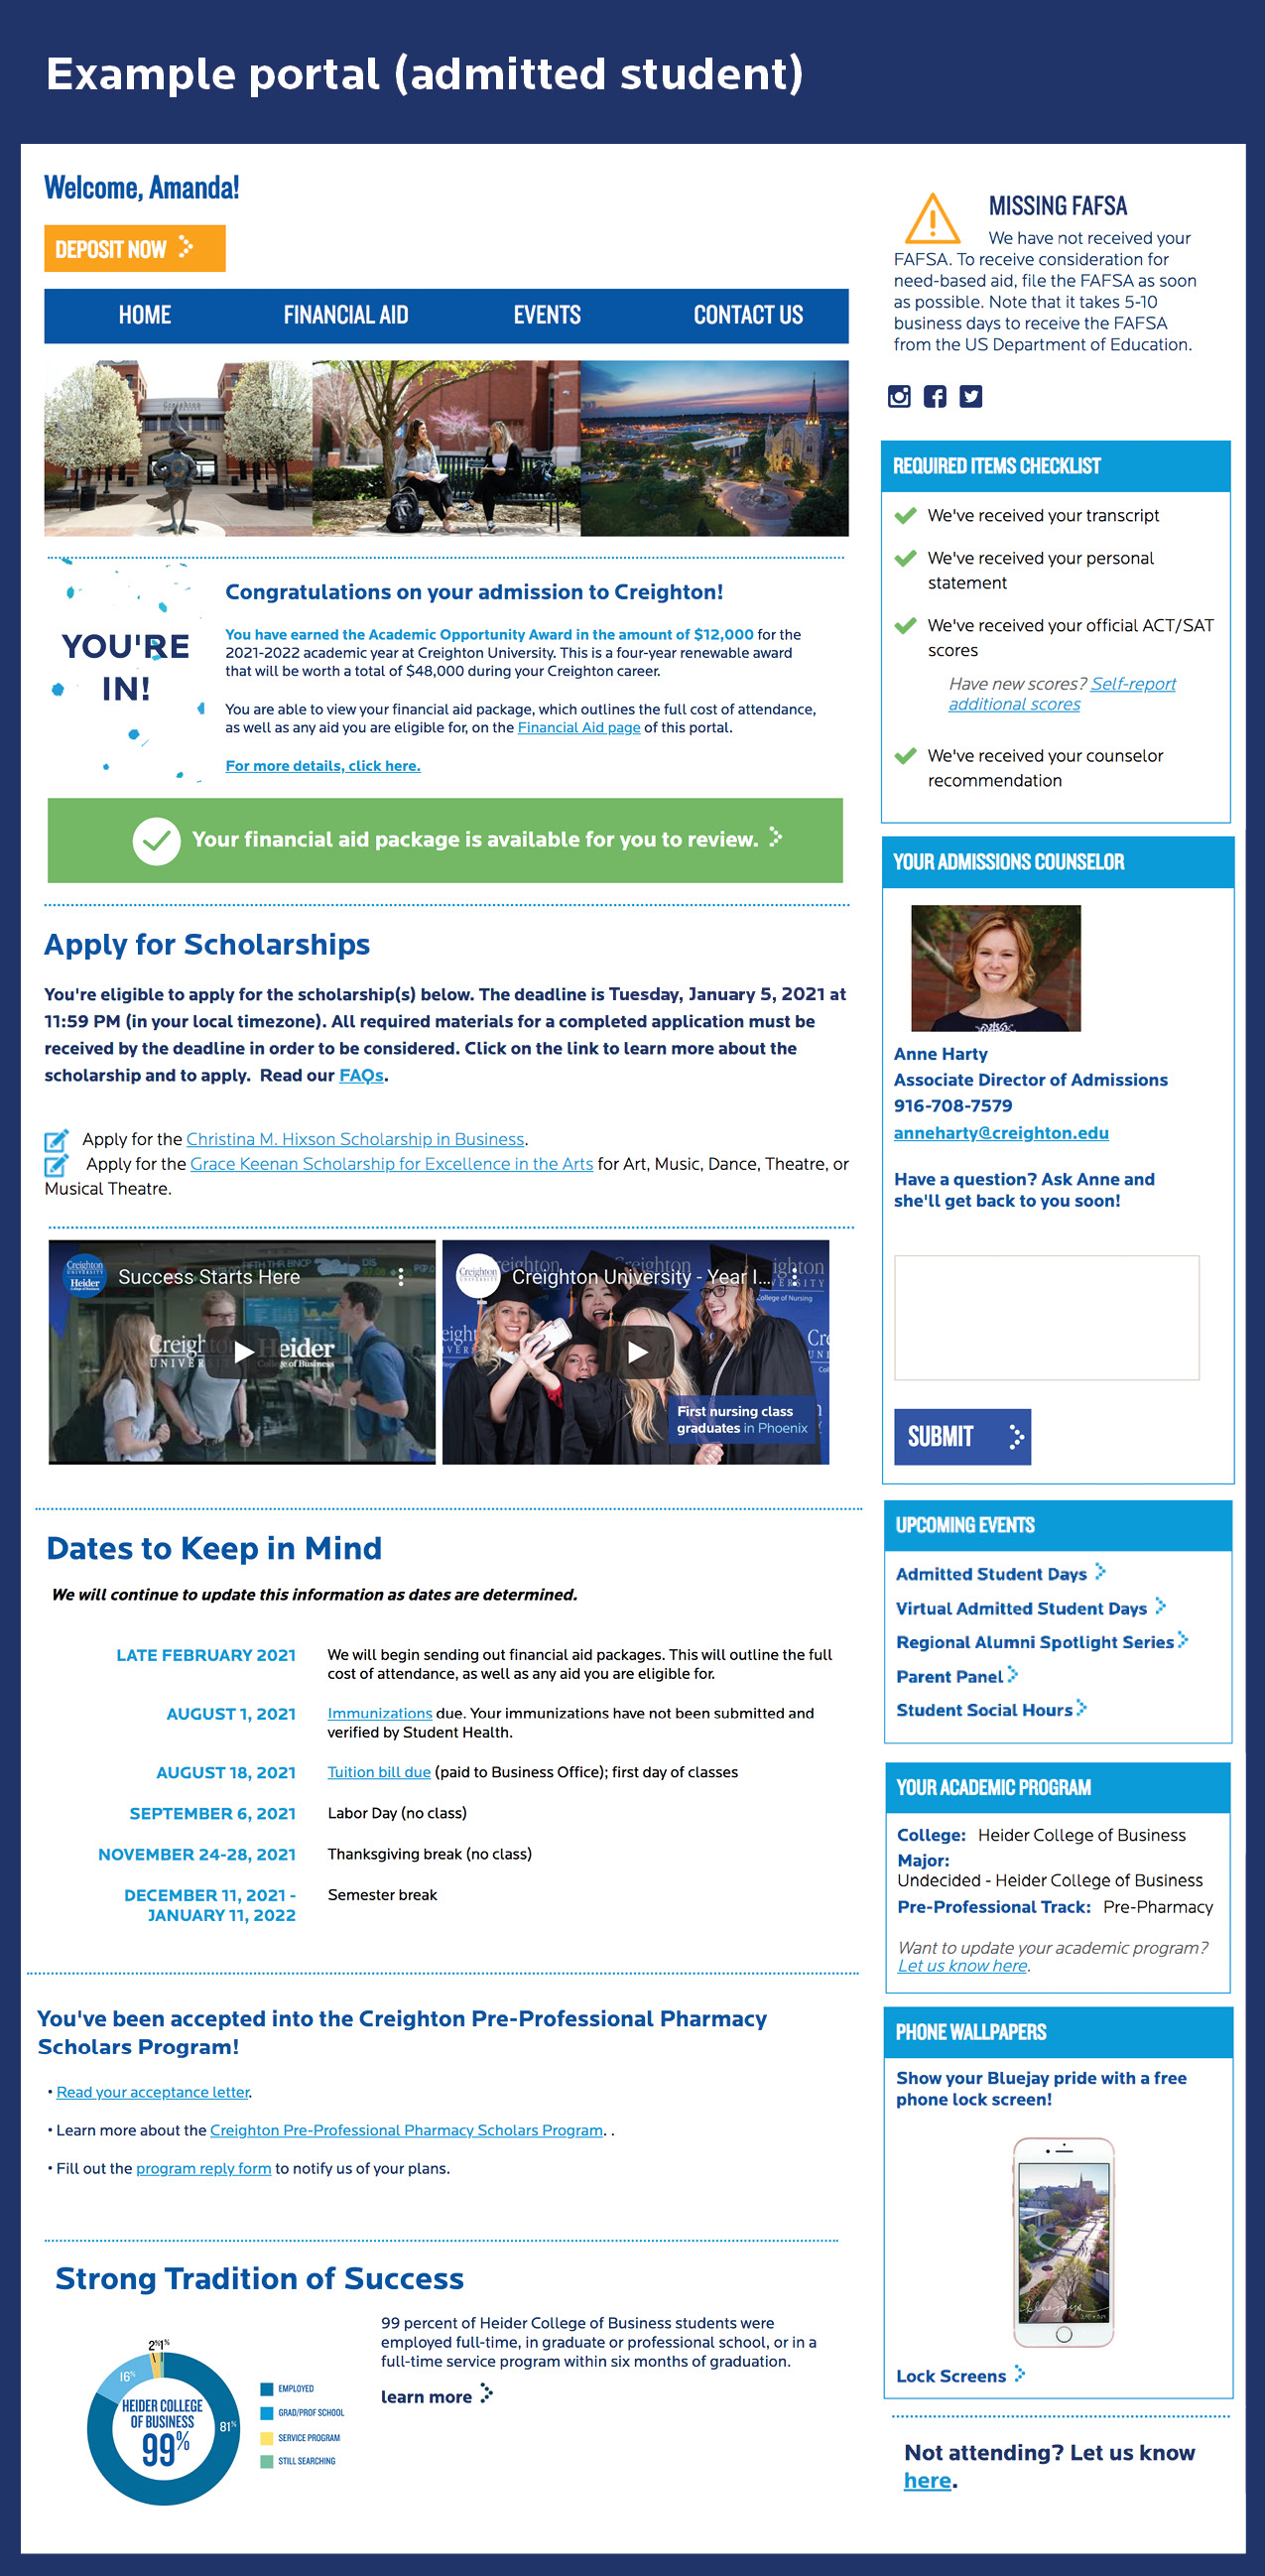 Student portal view for an admitted student